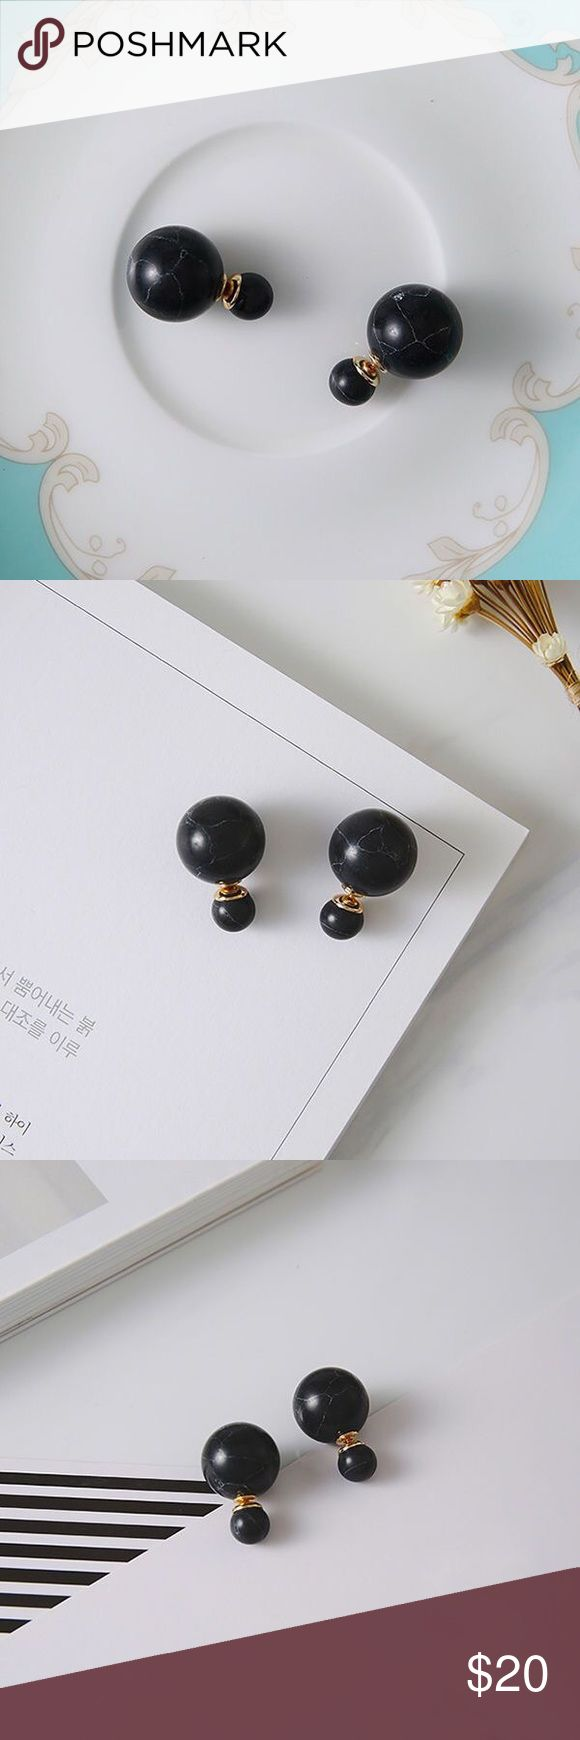 🆕the marble front & back earring • style name: the marble front & back earring • color: black marble • material: faux marble composite, metal alloy • front & back style earrings • faux marble ball front & back style earrings w/ gold tone hardware • condition: brand new boutique item ____________________________________________________ ✅ make an offer!     ✅ i bundle! ✅ posh compliant closet ⛔️ no trades 🛍 boutique item Jewelry Earrings